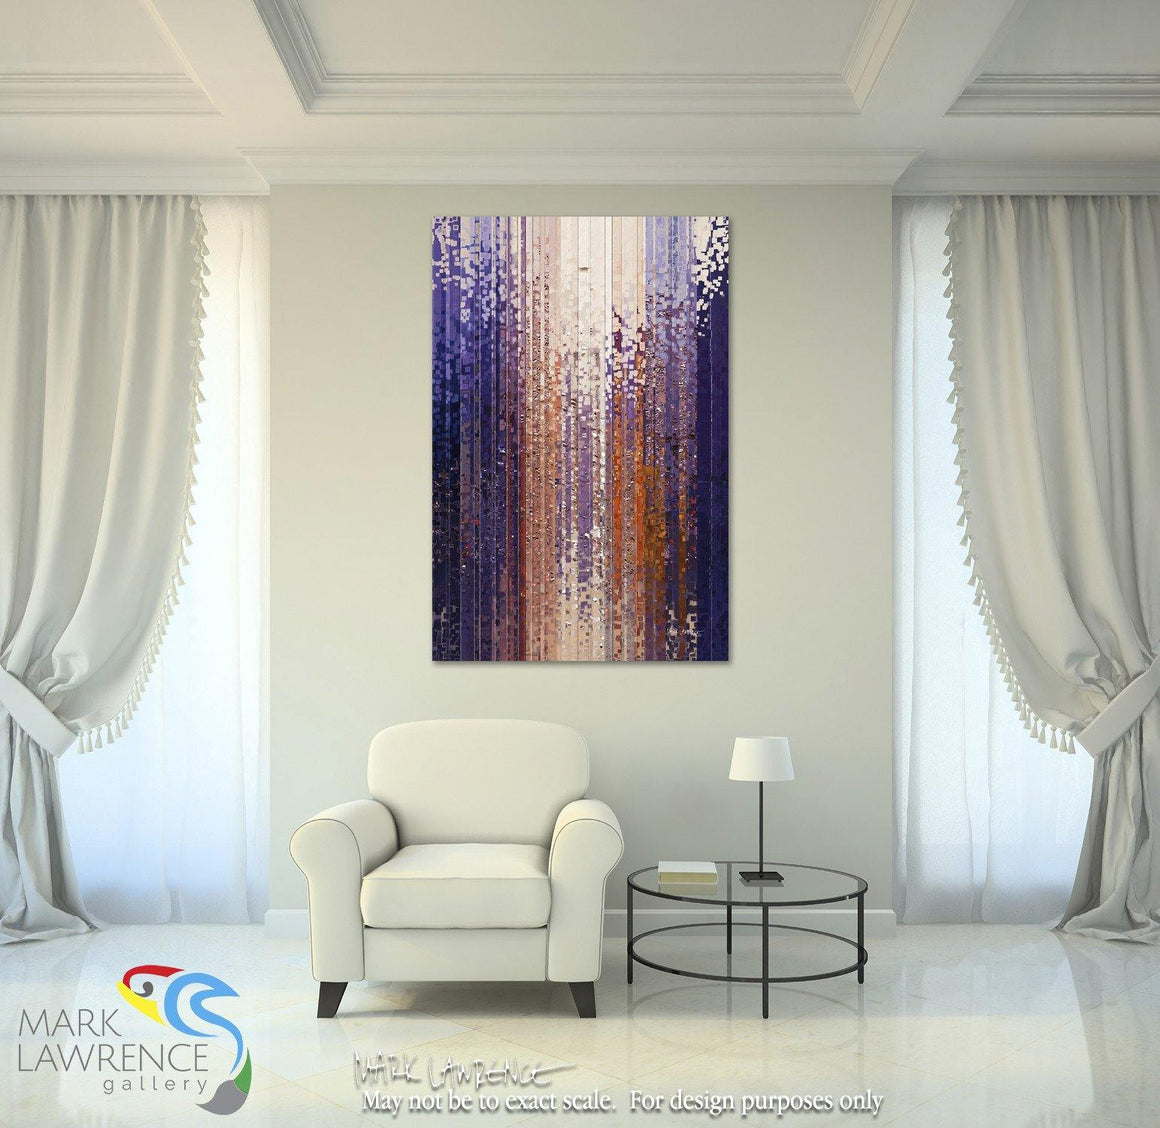 "Desigher Room Art Inspiration- Christian Art-MARK LAWRENCE. VerseVisions inspirational abstract art by Mark Lawrence. Original limited edition signed canvas & paper giclees. Sizes to 54""x81"""